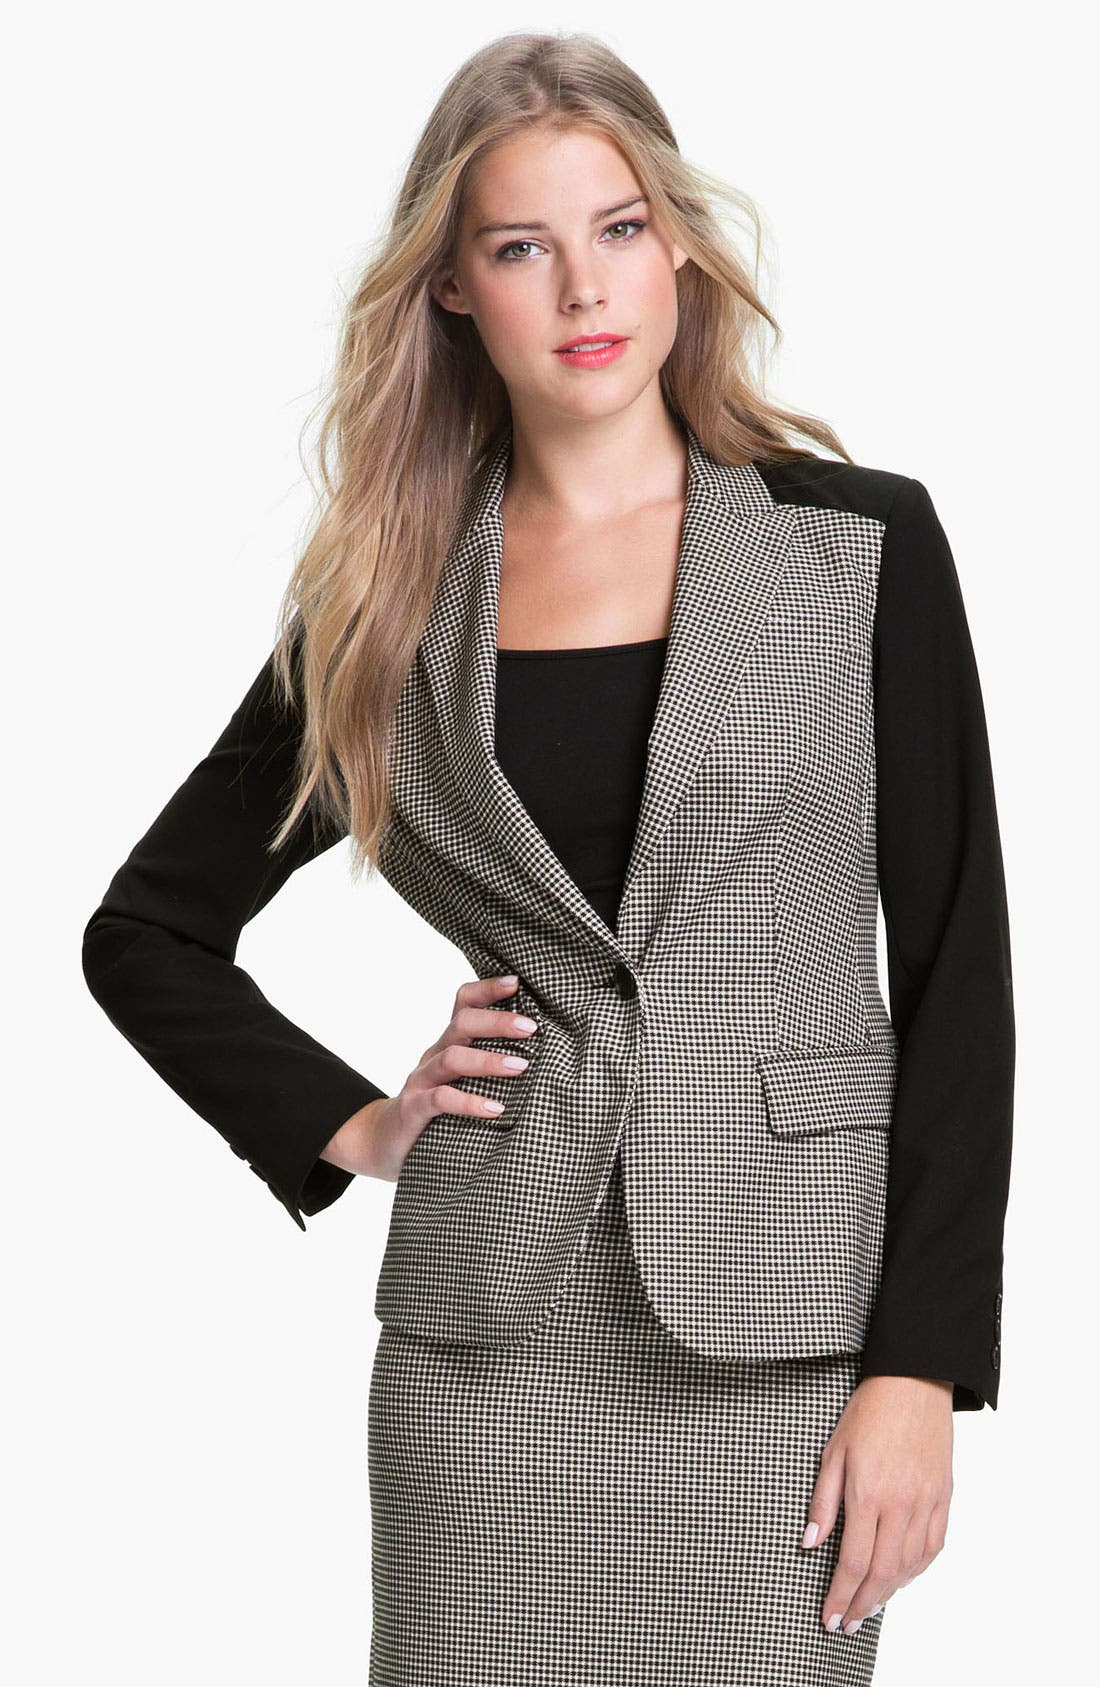 Alternate Image 1 Selected - Vince Camuto Colorblock Houndstooth Blazer